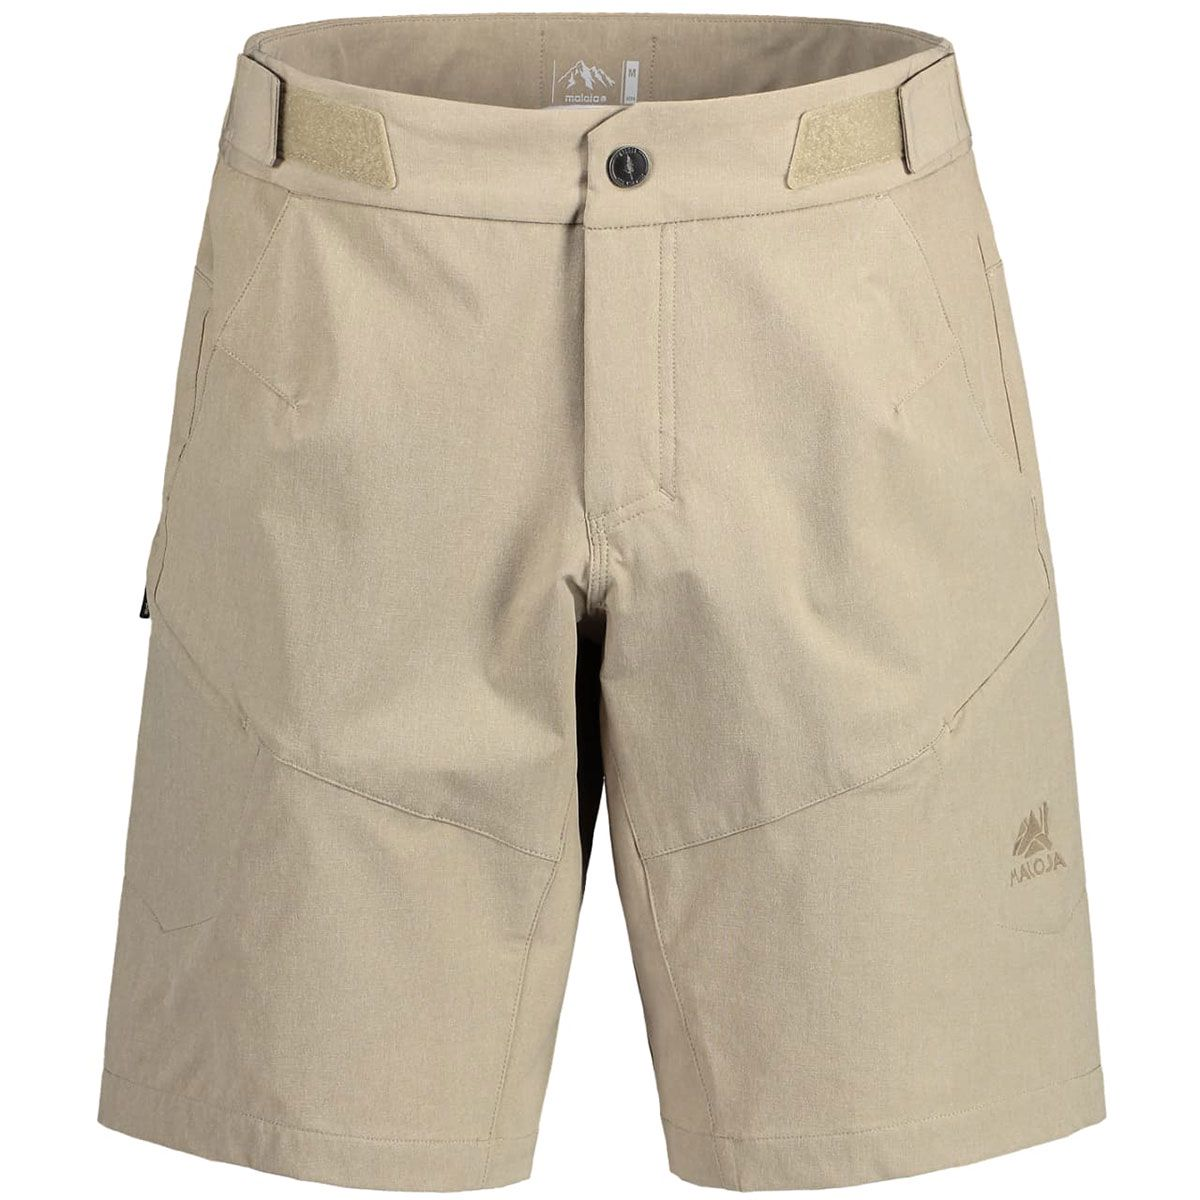 Maloja shorts